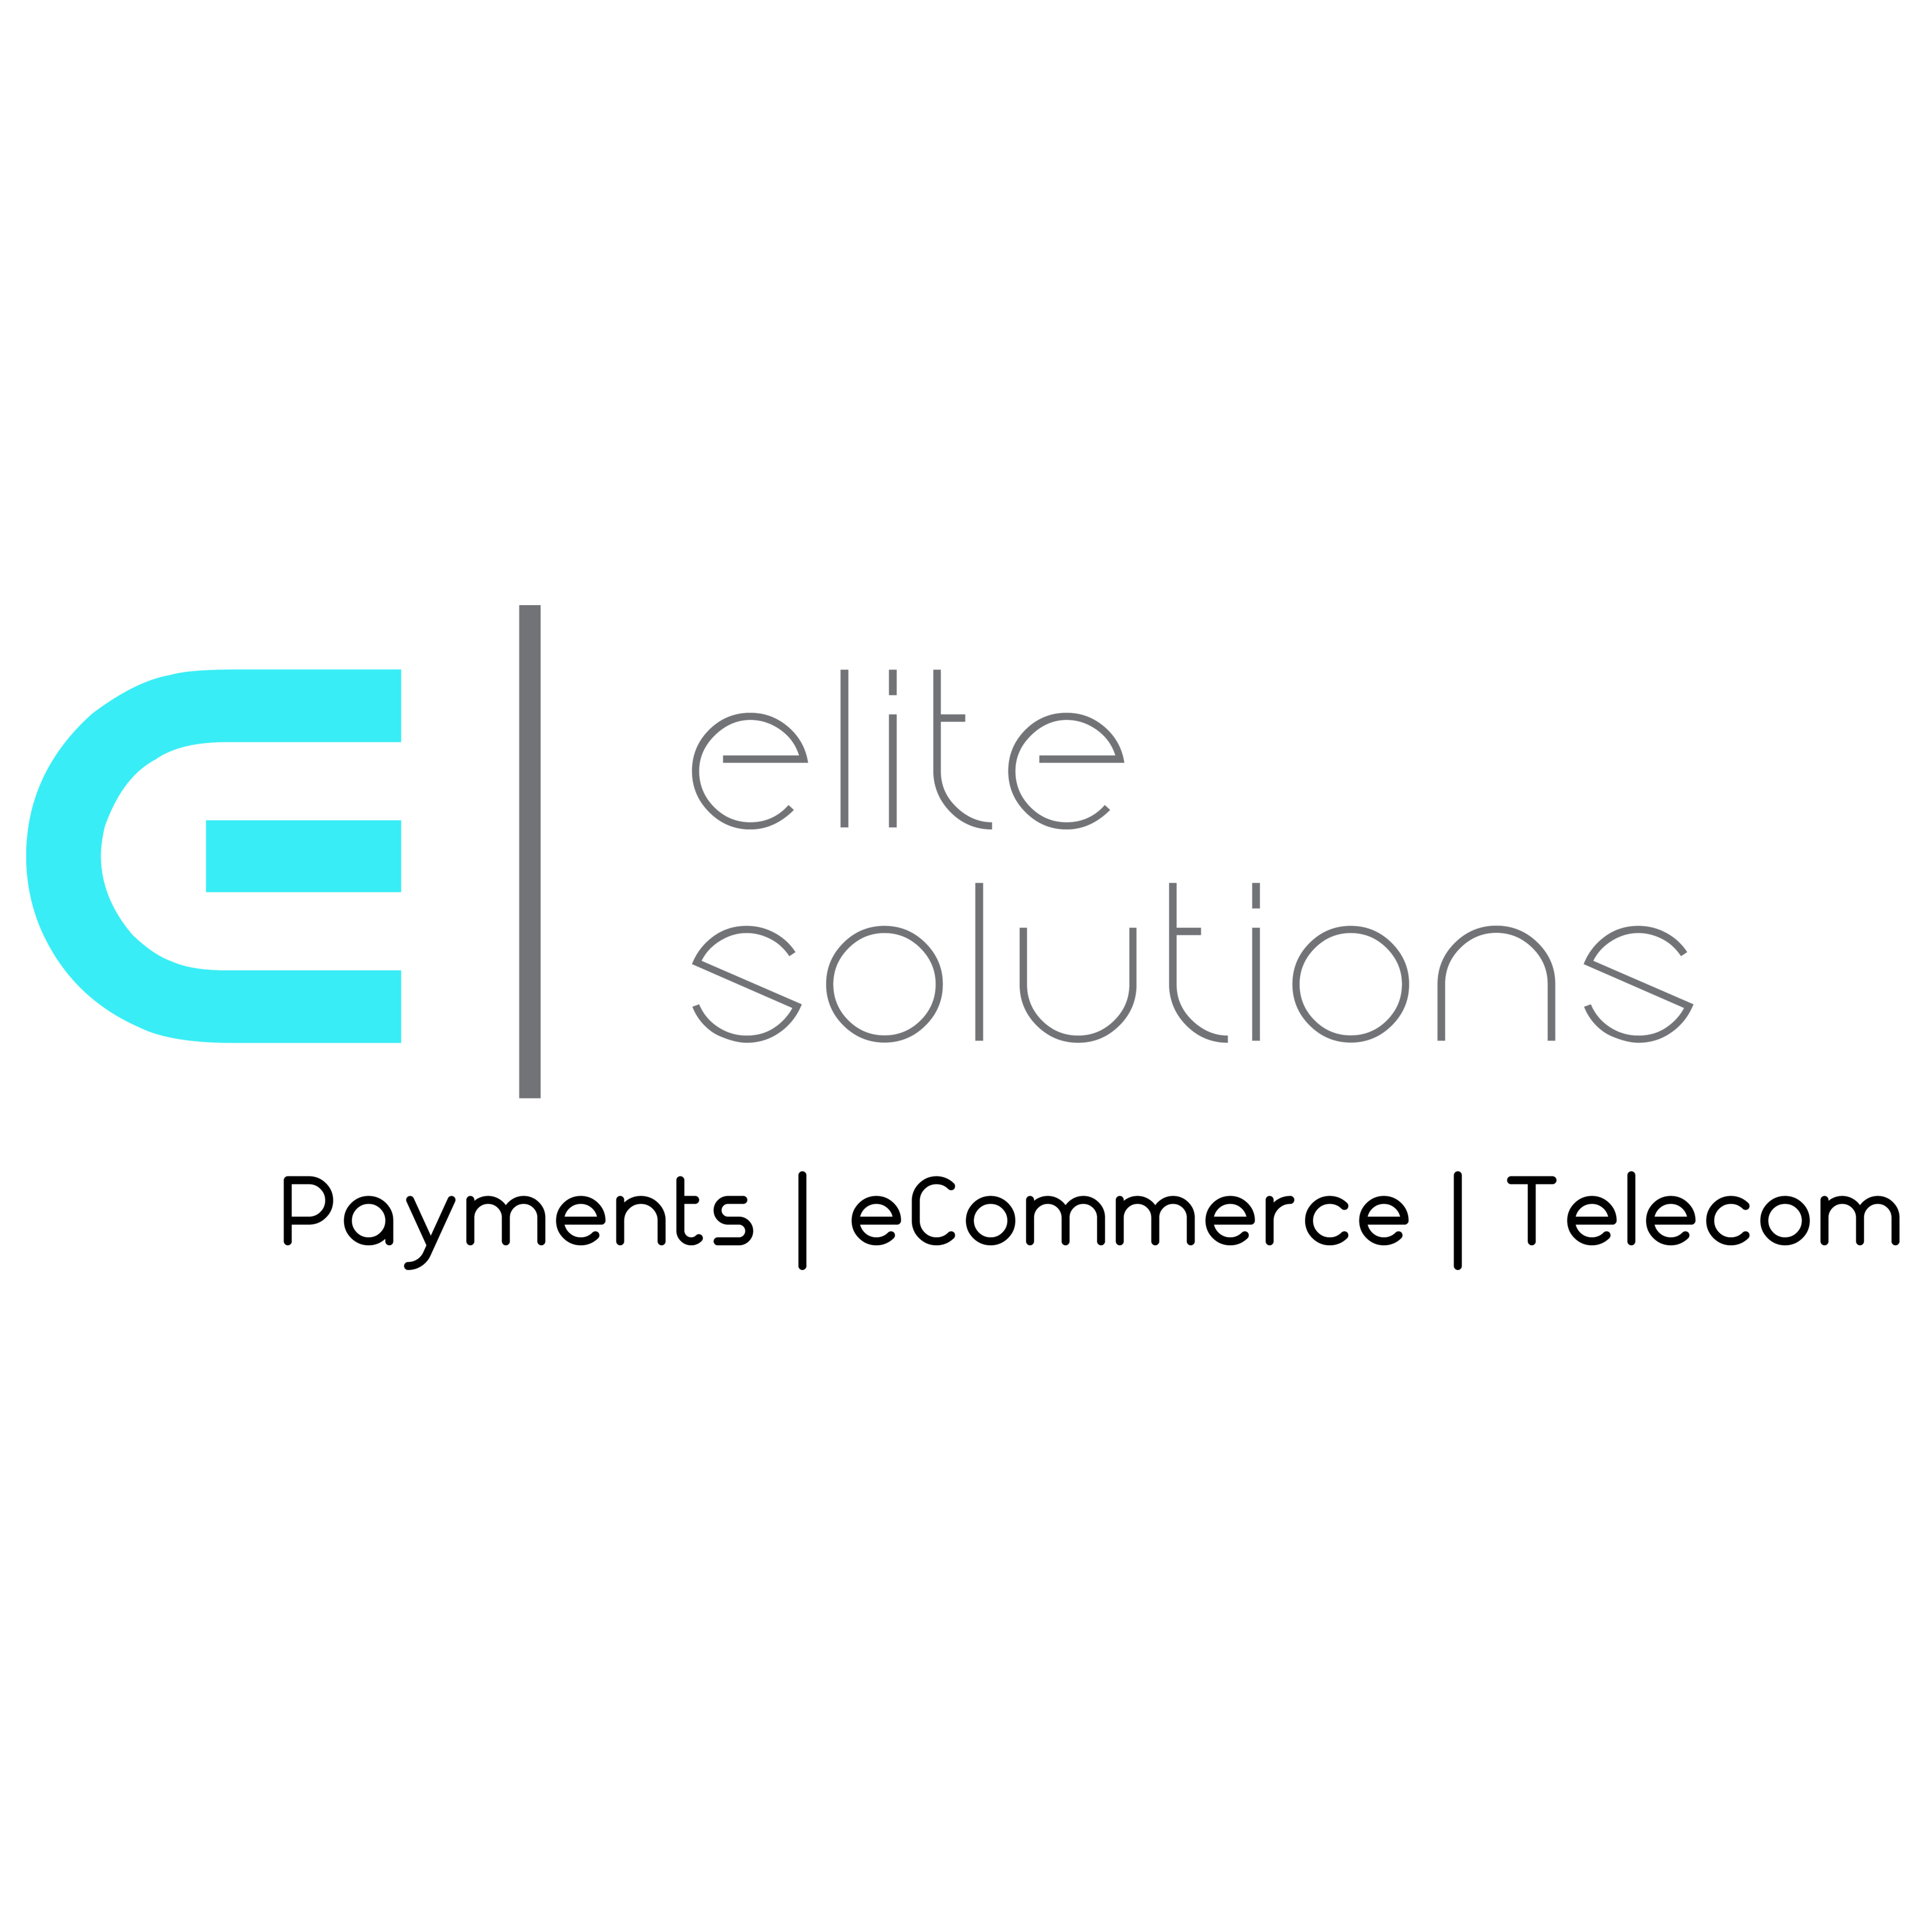 image of Elite Solutions